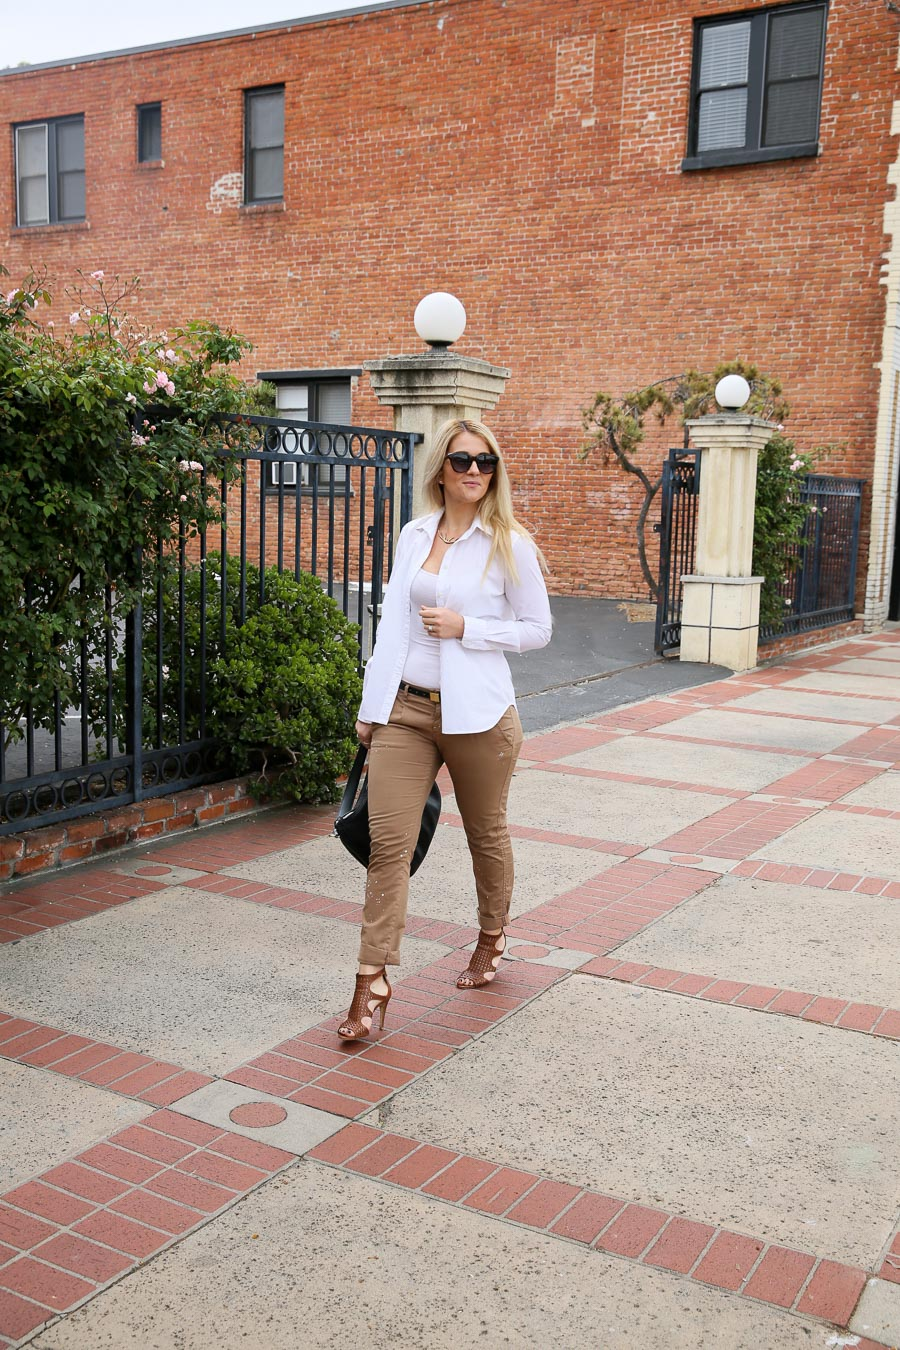 Khaki Pants Outfit with White Shirt for Women